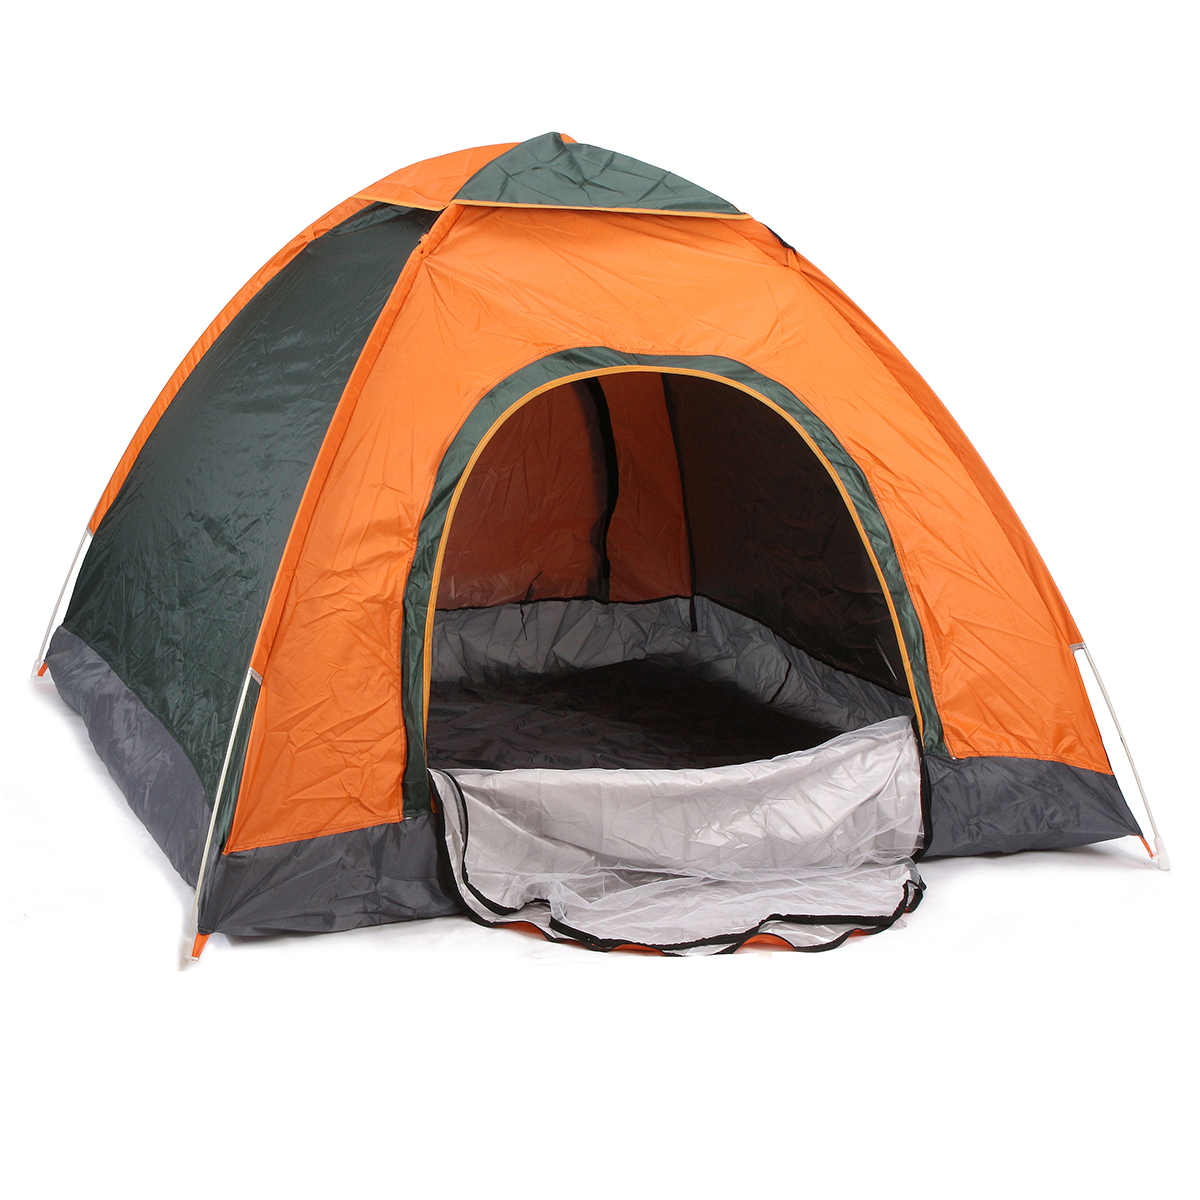 Image is loading Portable-Waterproof-Automatic-Outdoor-Instant-Pop-Up-Tent-  sc 1 st  eBay & Portable Waterproof Automatic Outdoor Instant Pop Up Tent Camping ...